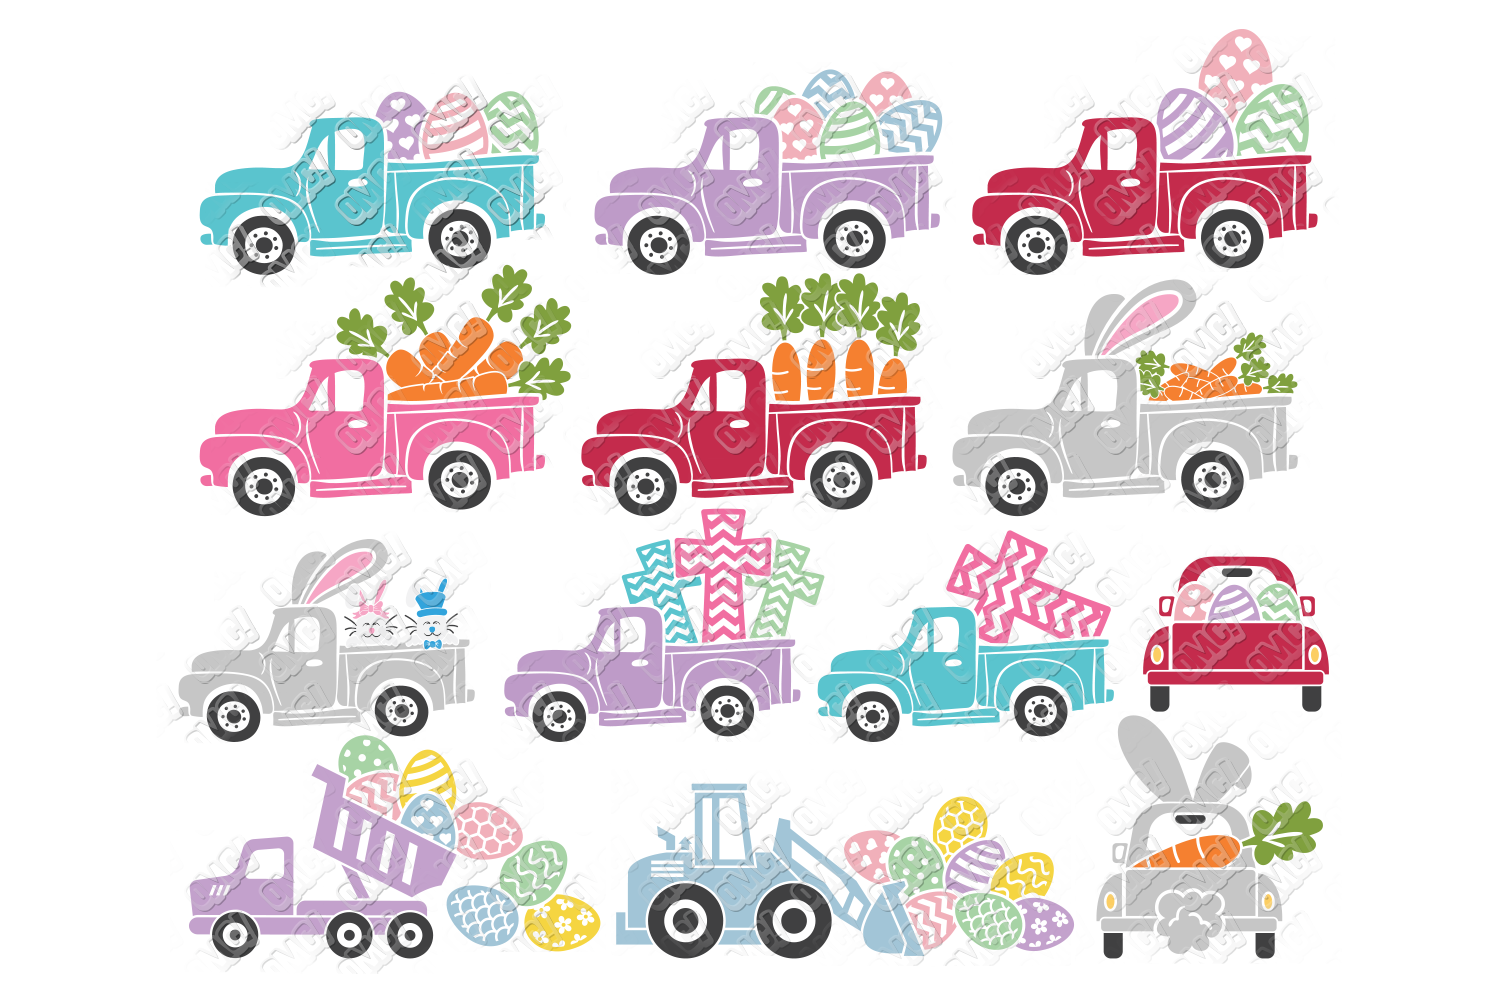 Easter Truck SVG Dump Truck in SVG, DXF, PNG, EPS, JPEG example image 1